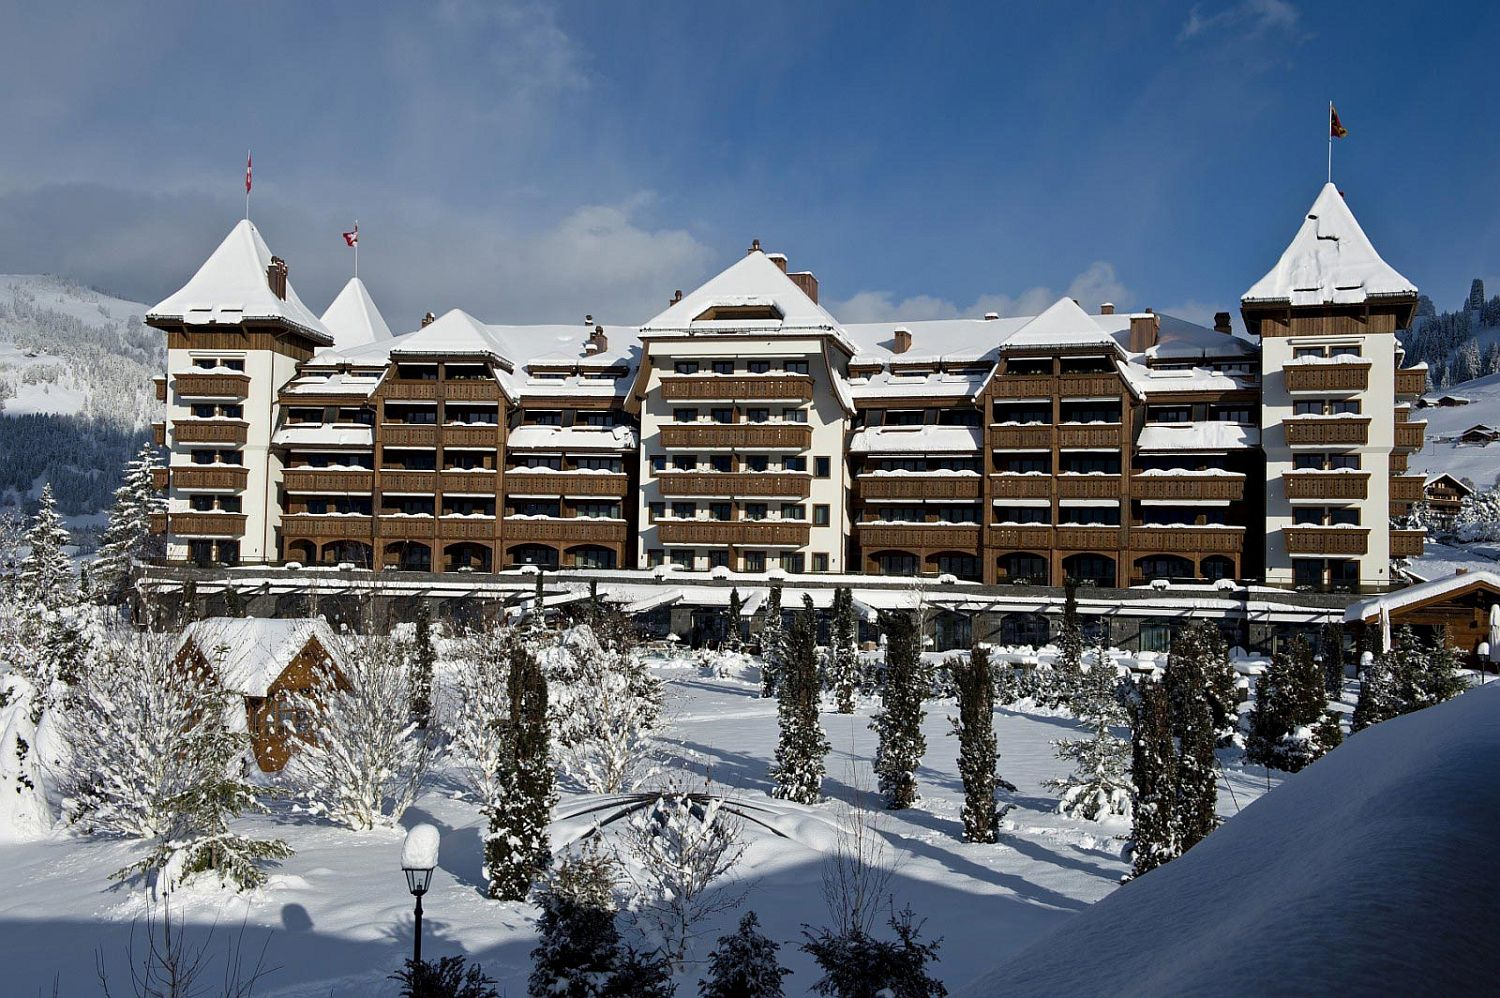 Snow-covered facade of luxurious 5-star hotel - Alpina Gstaad